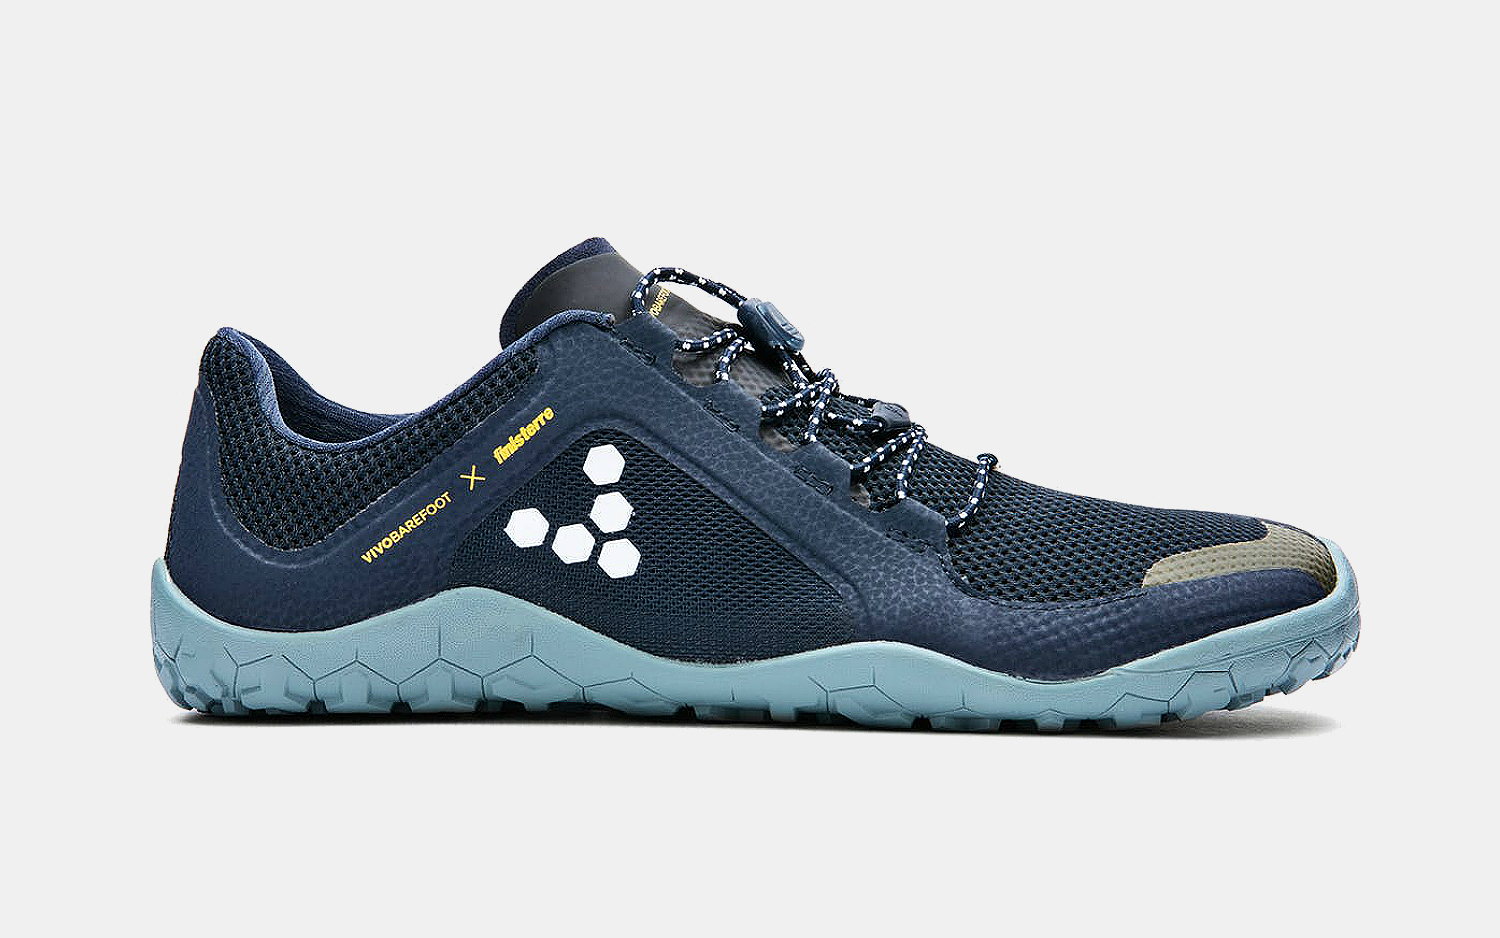 Vivobarefoot x Finisterre Primus Trail Shoes